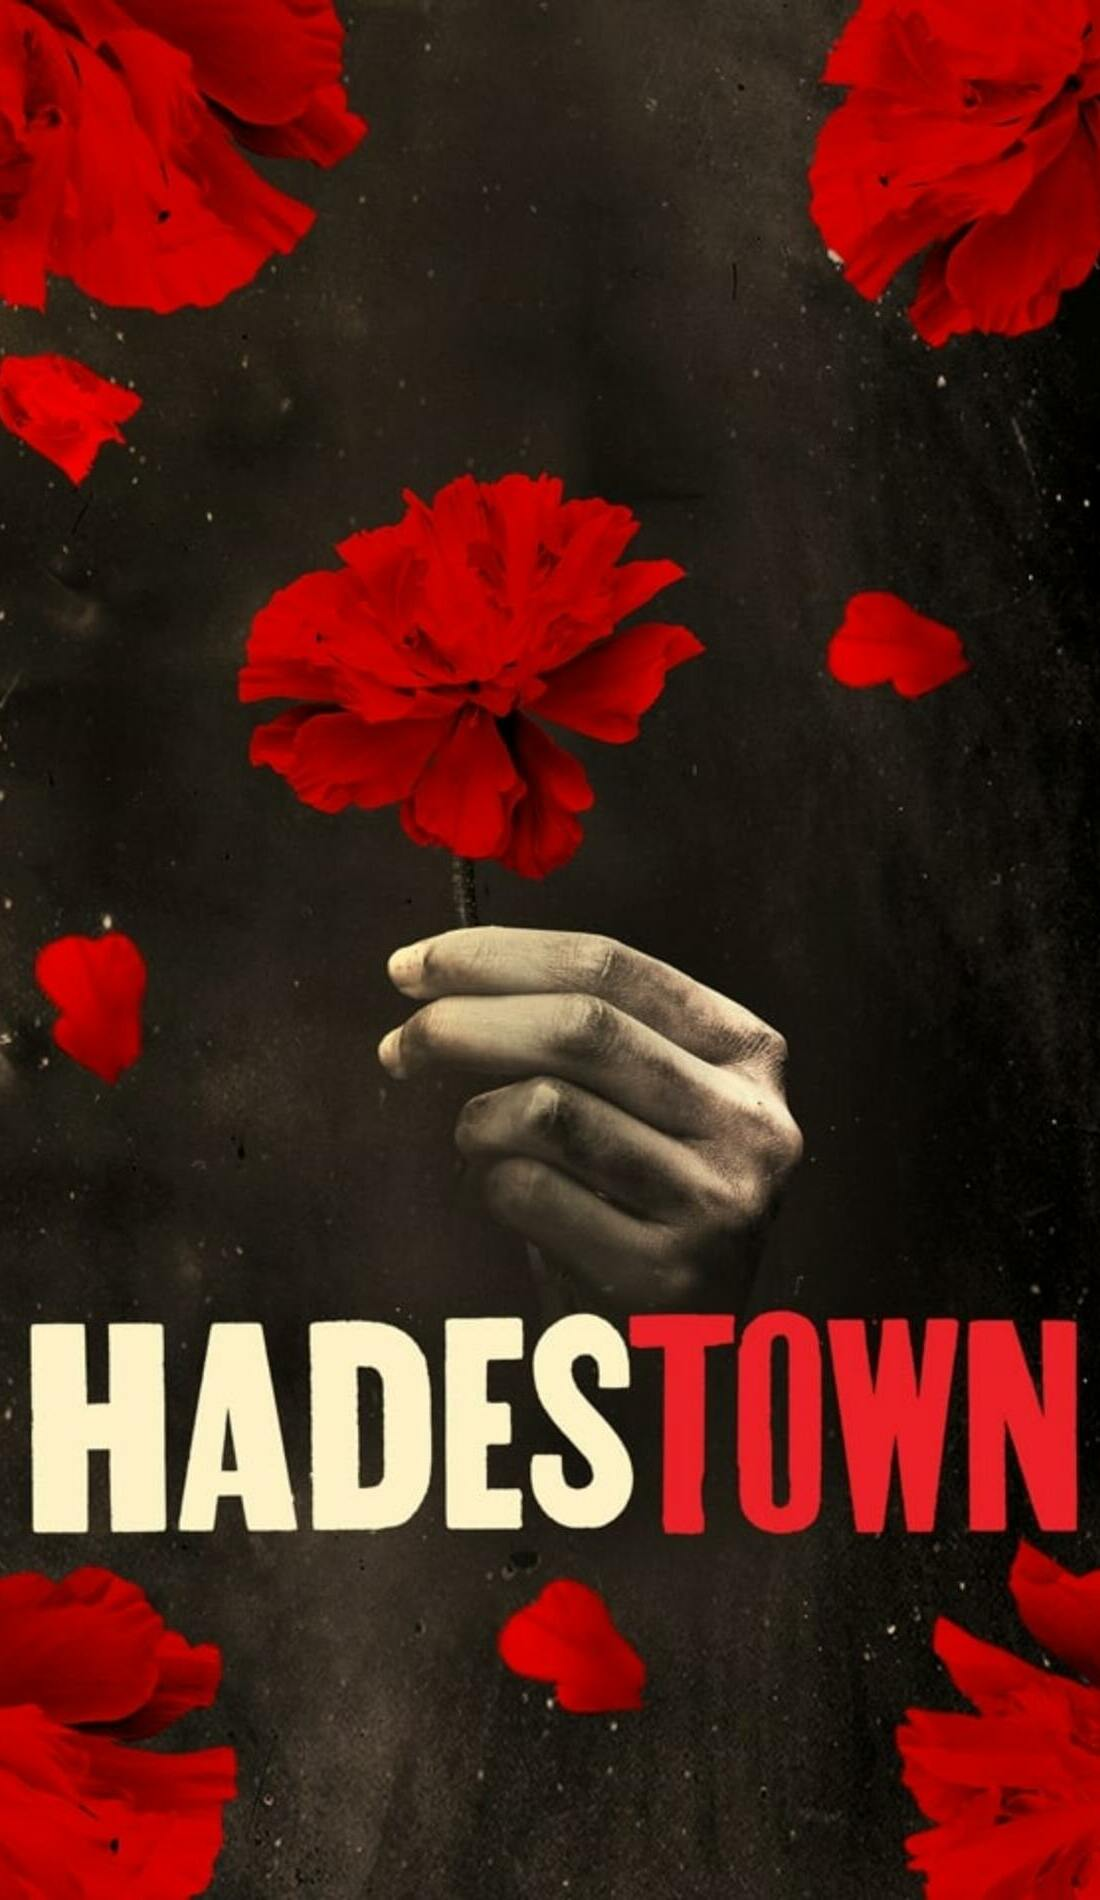 A Hadestown live event